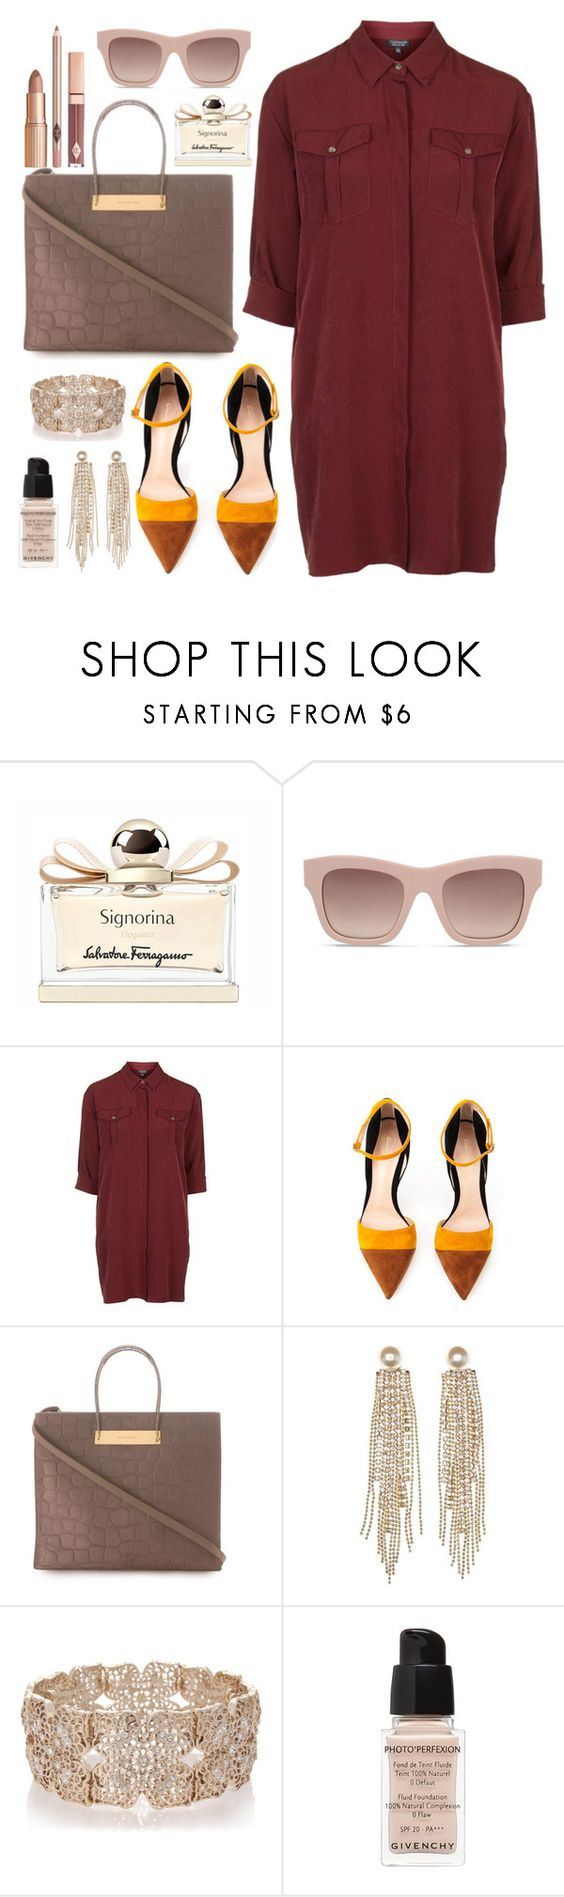 """""""It's summer somewhere :)"""" by anchilly23 ❤ liked on Polyvore featuring Salvatore Ferragamo, STELLA McCARTNEY, Topshop, Gianvito Rossi, Balenciaga, Charlotte Russe, Oasis and Givenchy"""